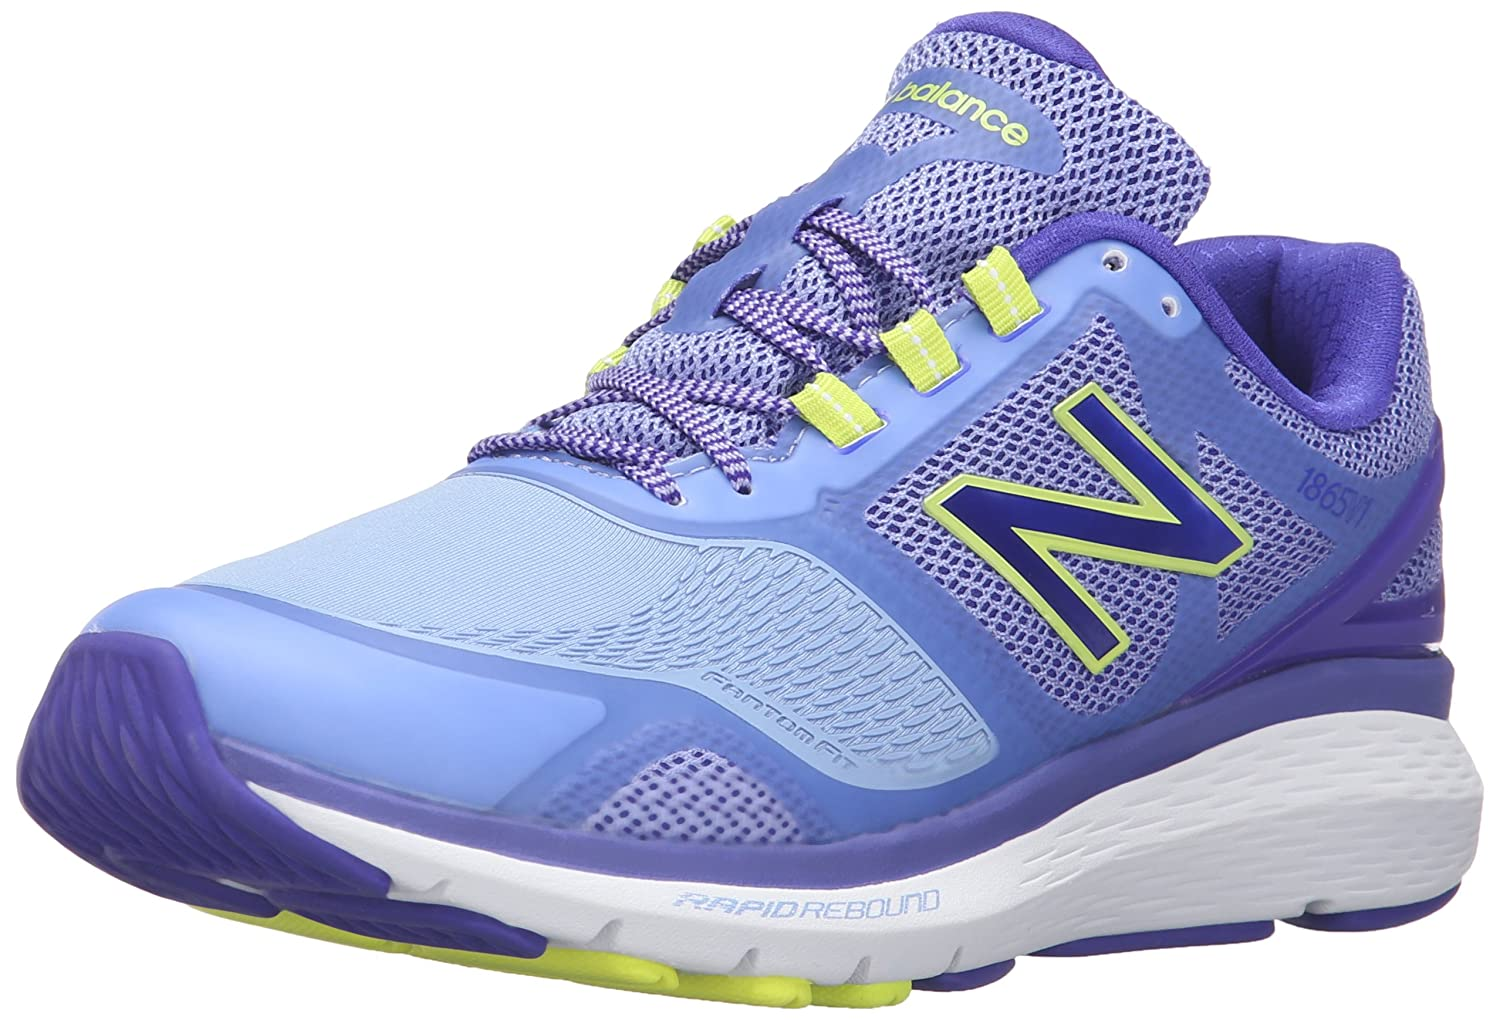 New Balance Women's WW1865v1 Walking Shoe B019DLDOKY 8 B(M) US|Purple